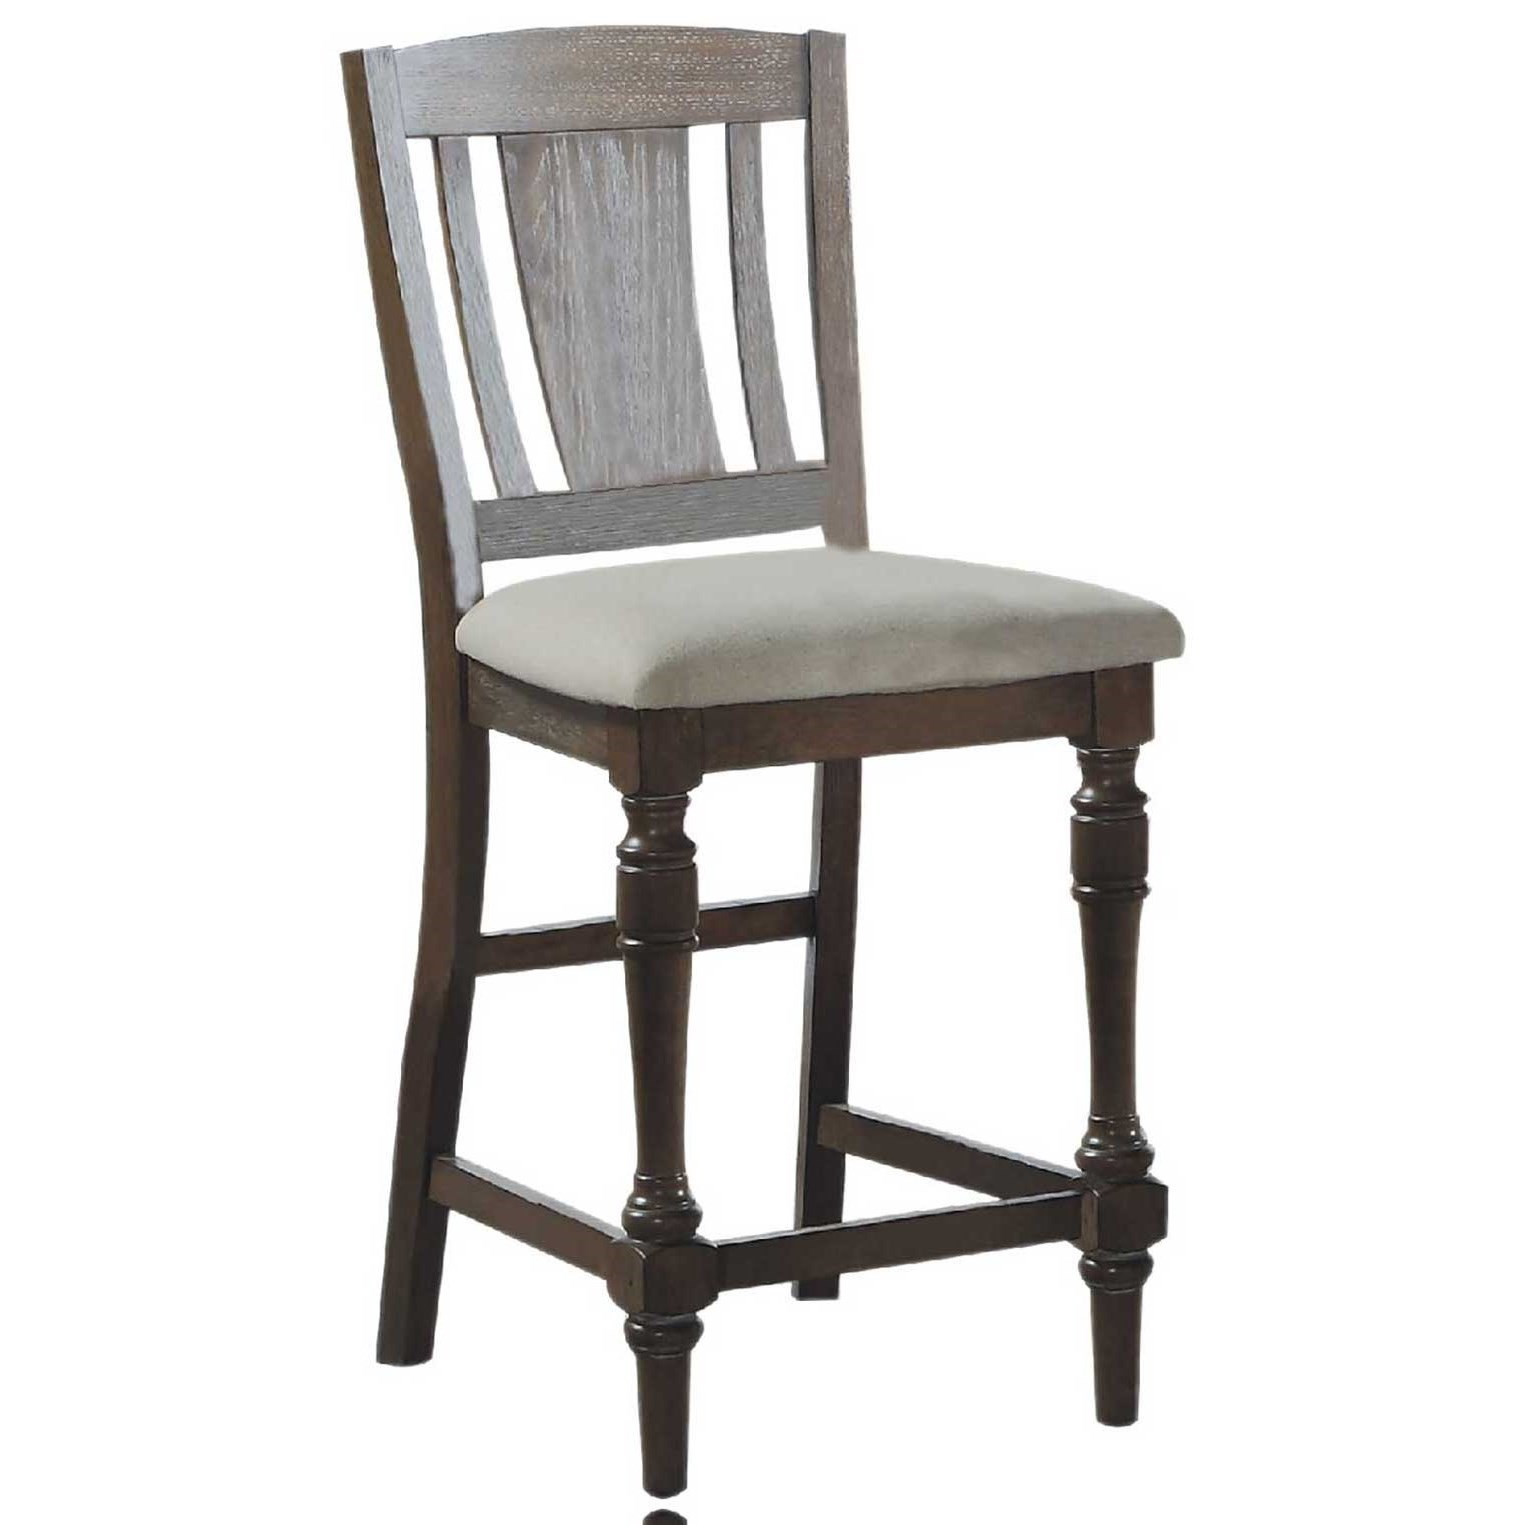 counter height chairs with back beach on the pictures winners only xcalibur slat barstool upholstered seat by